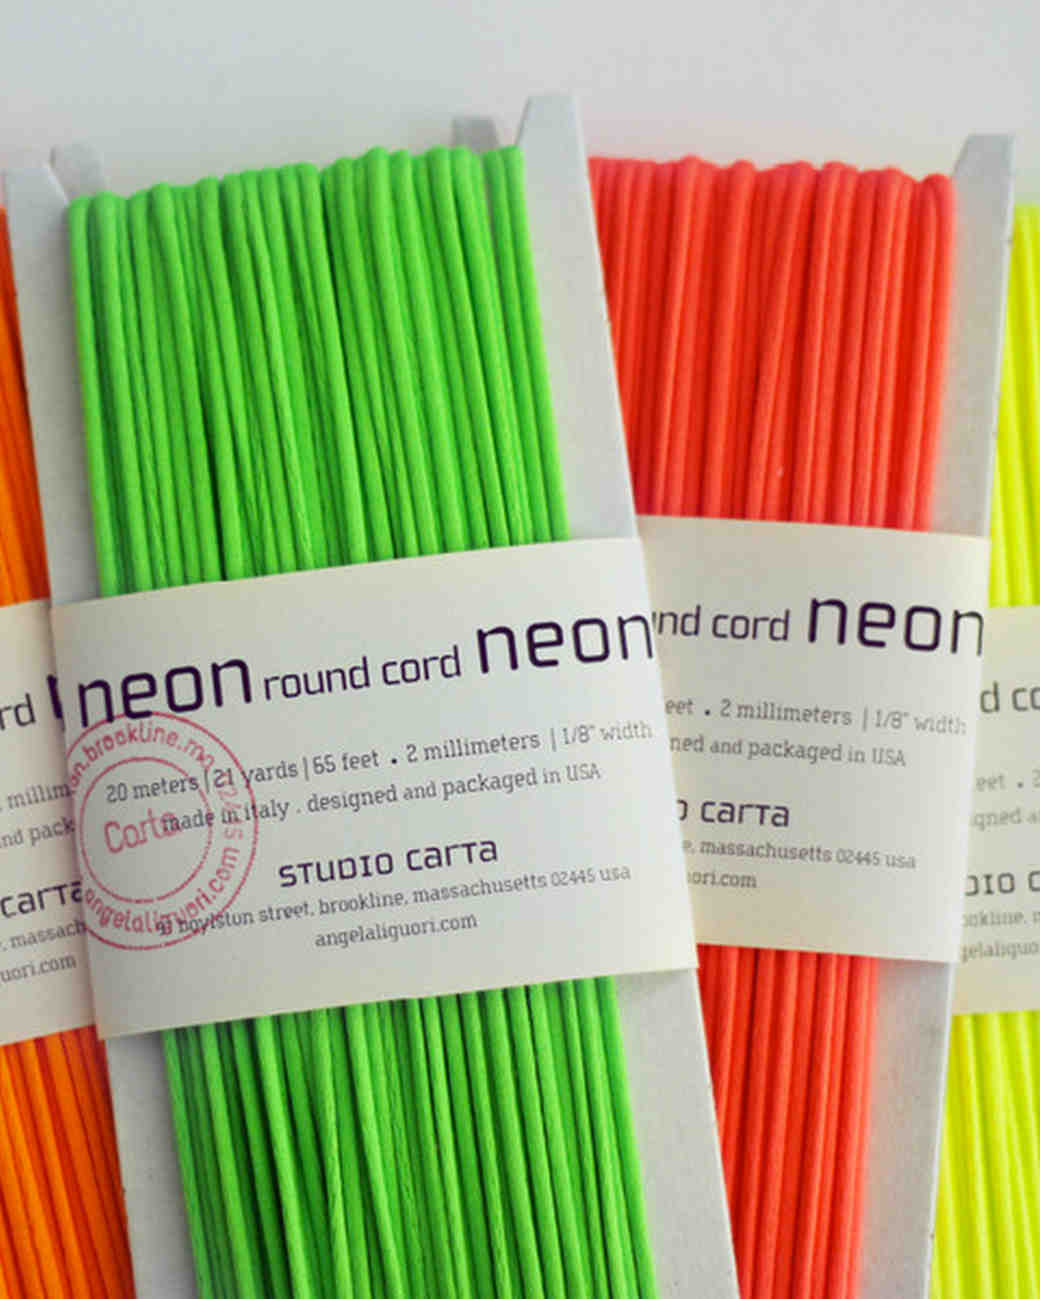 neon-wedding-ideas-angela-liguori-cord-0614.jpg